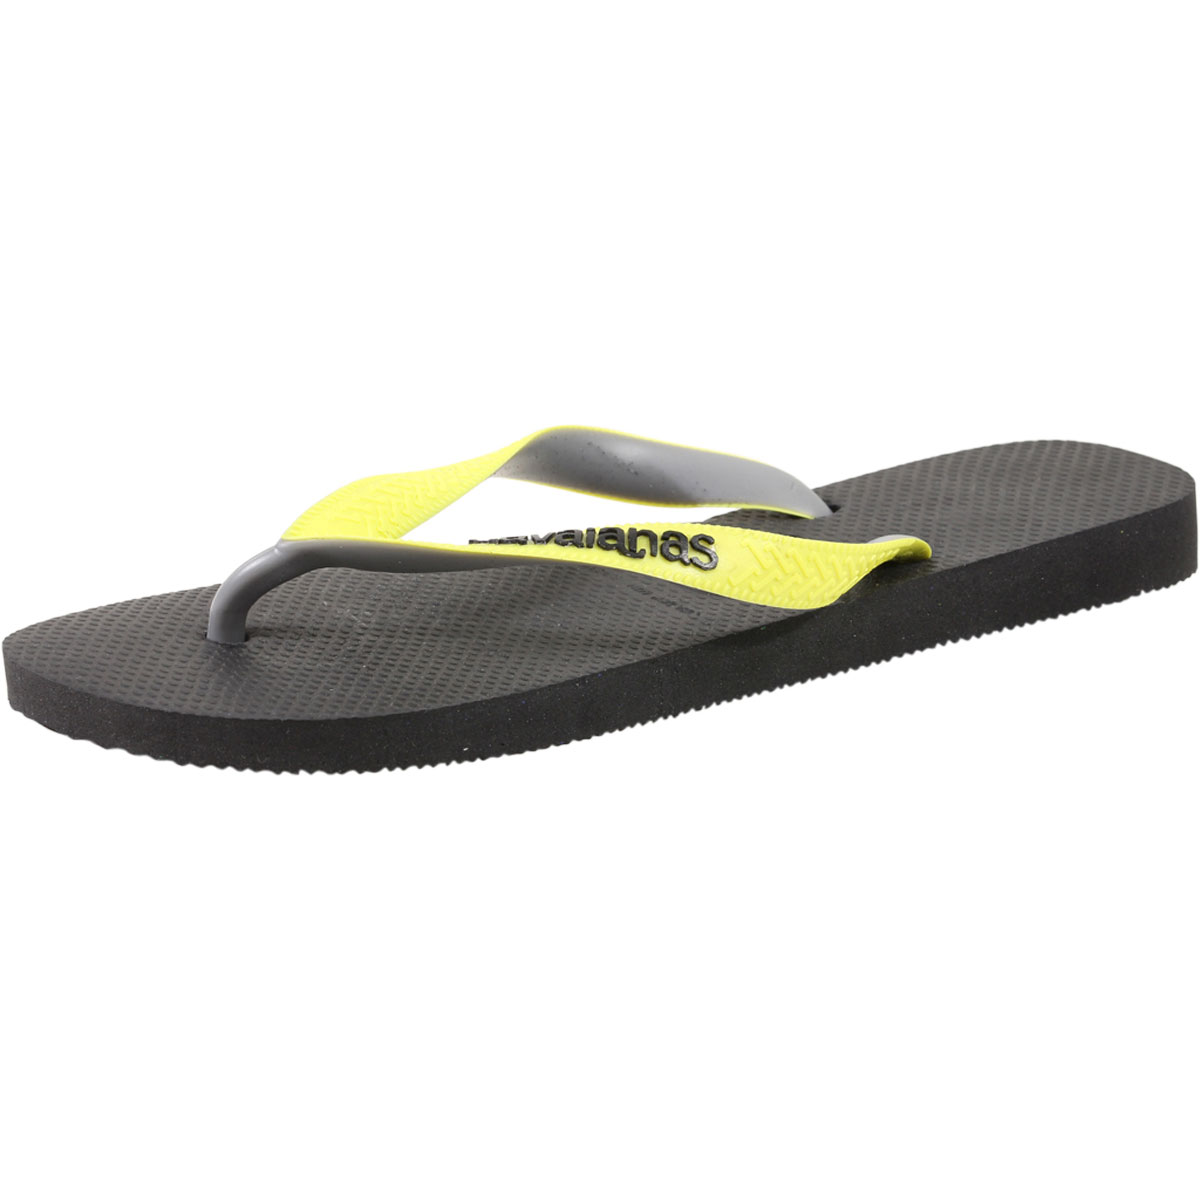 7b99bcc97f4c3b Havaianas Top Mix Flip Flops Sandals Shoes